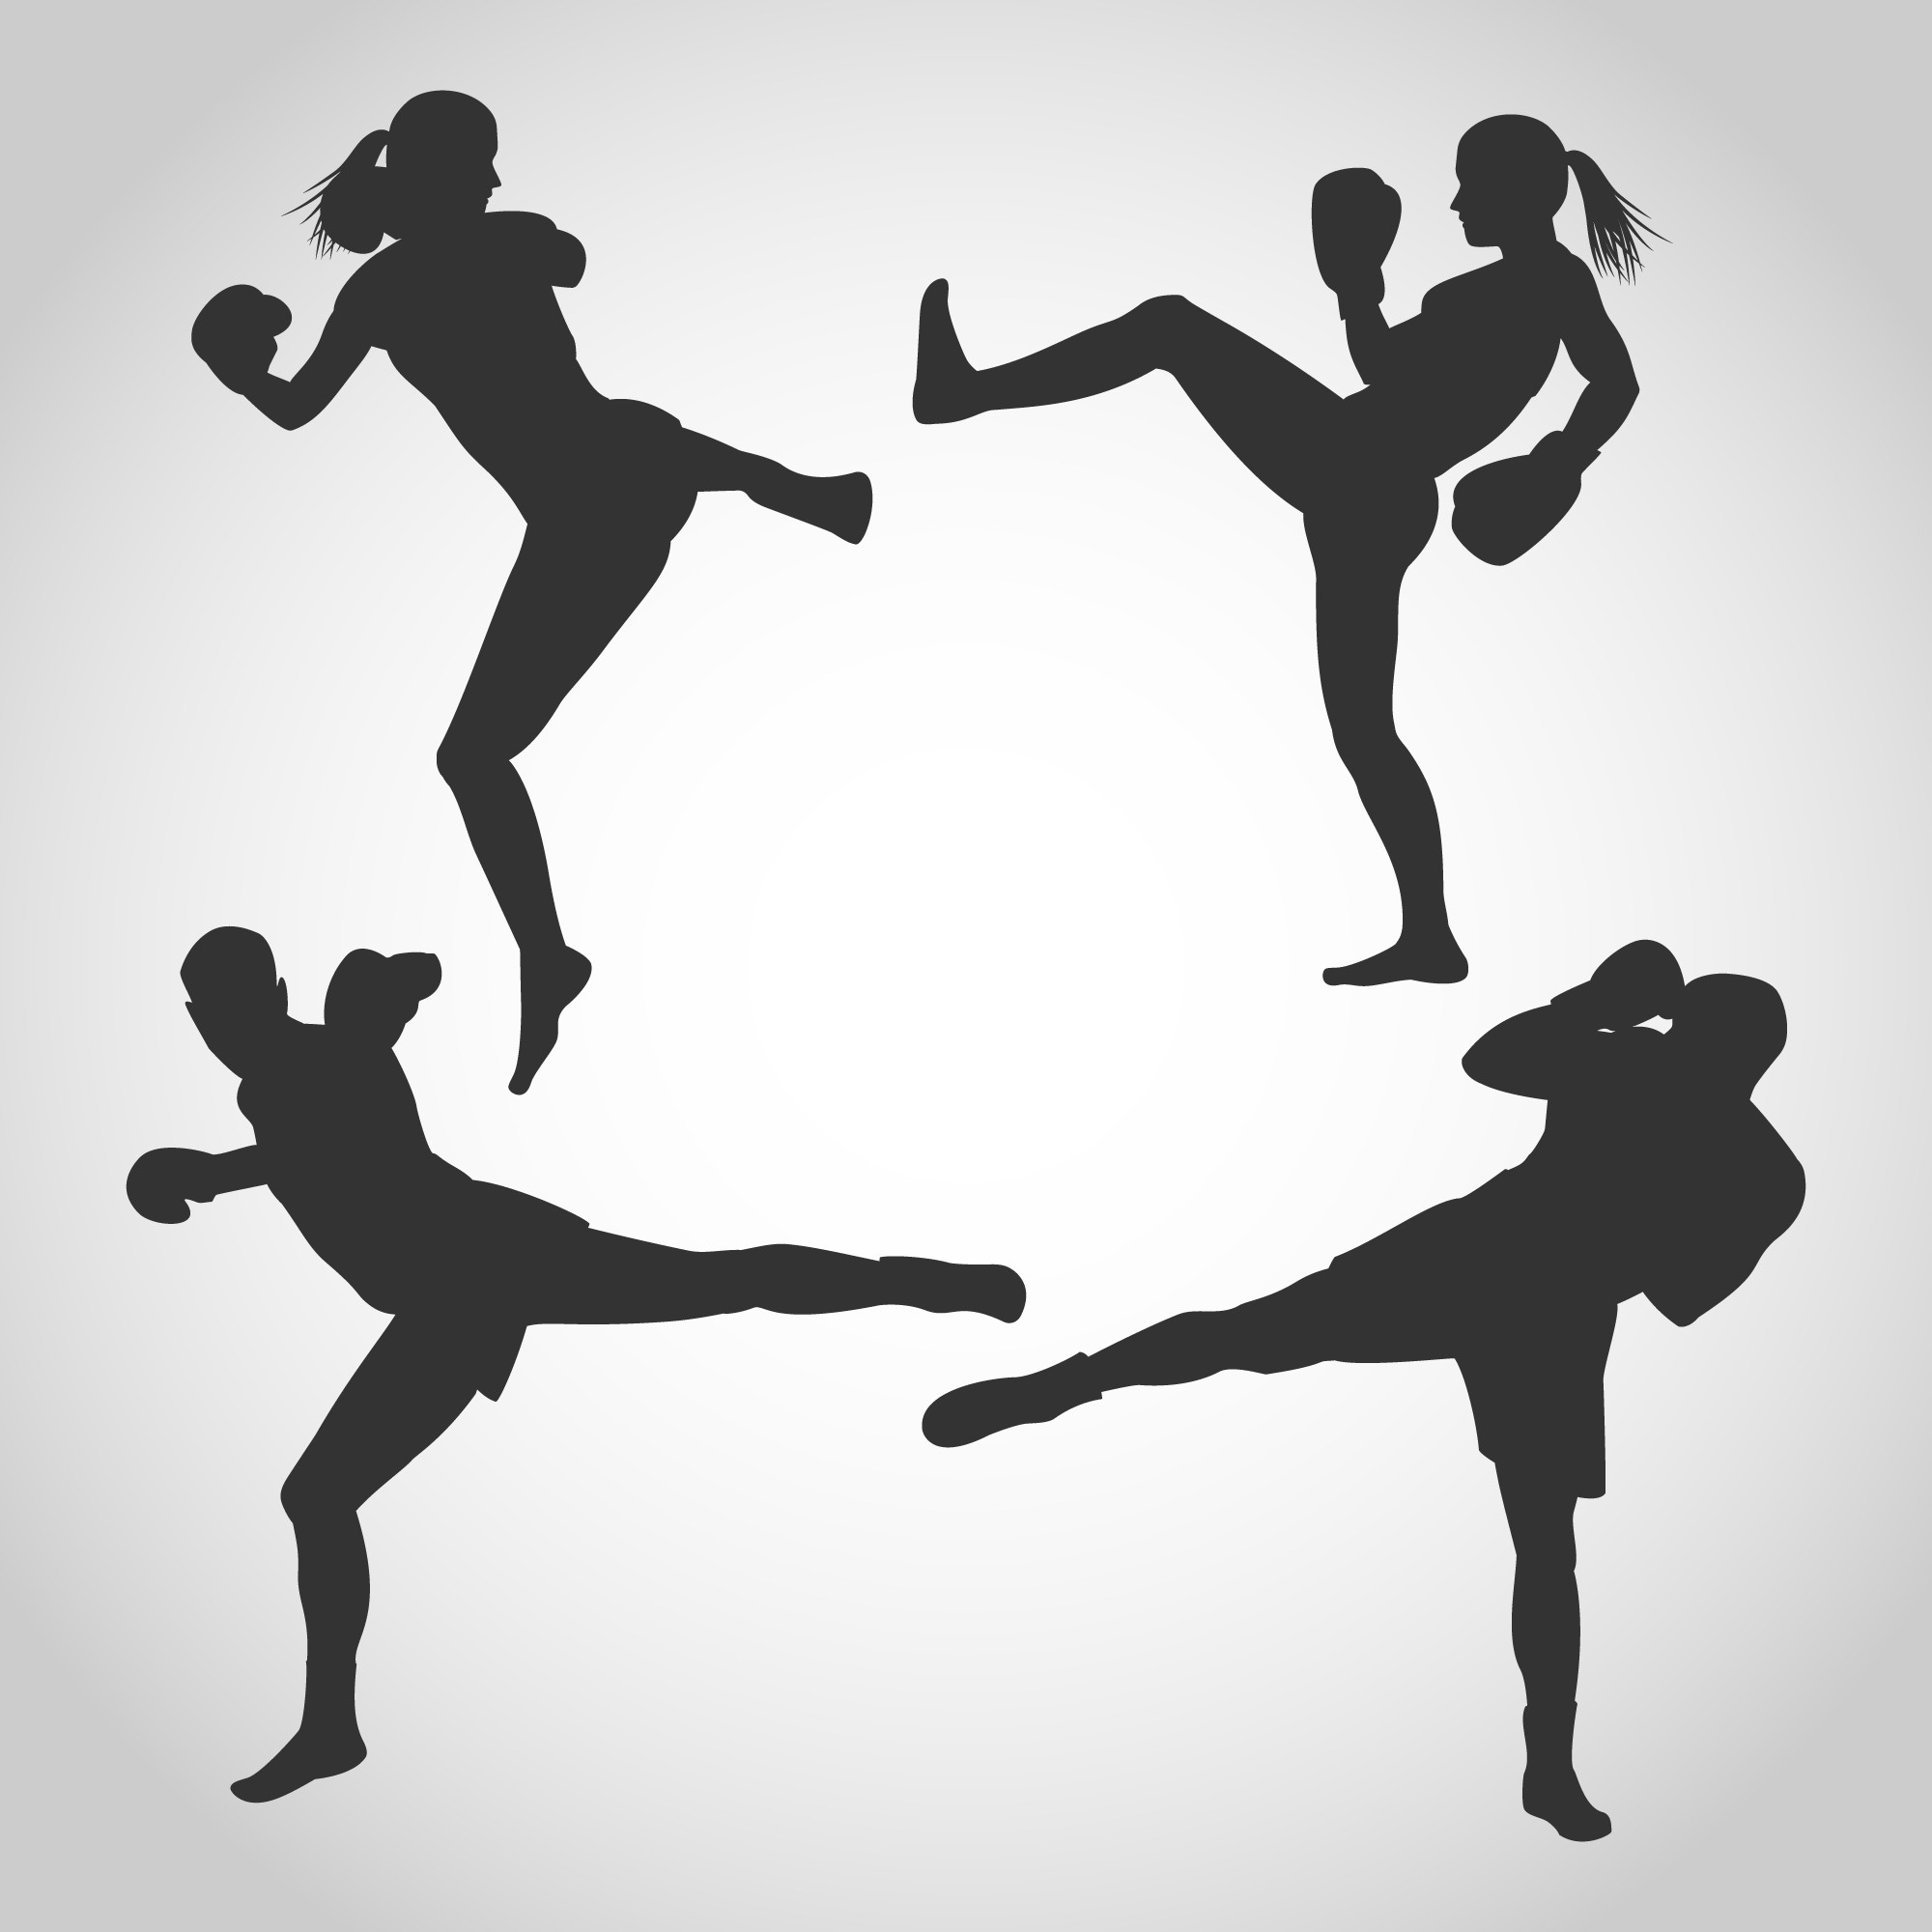 Men and Women Kickboxing Silhouette